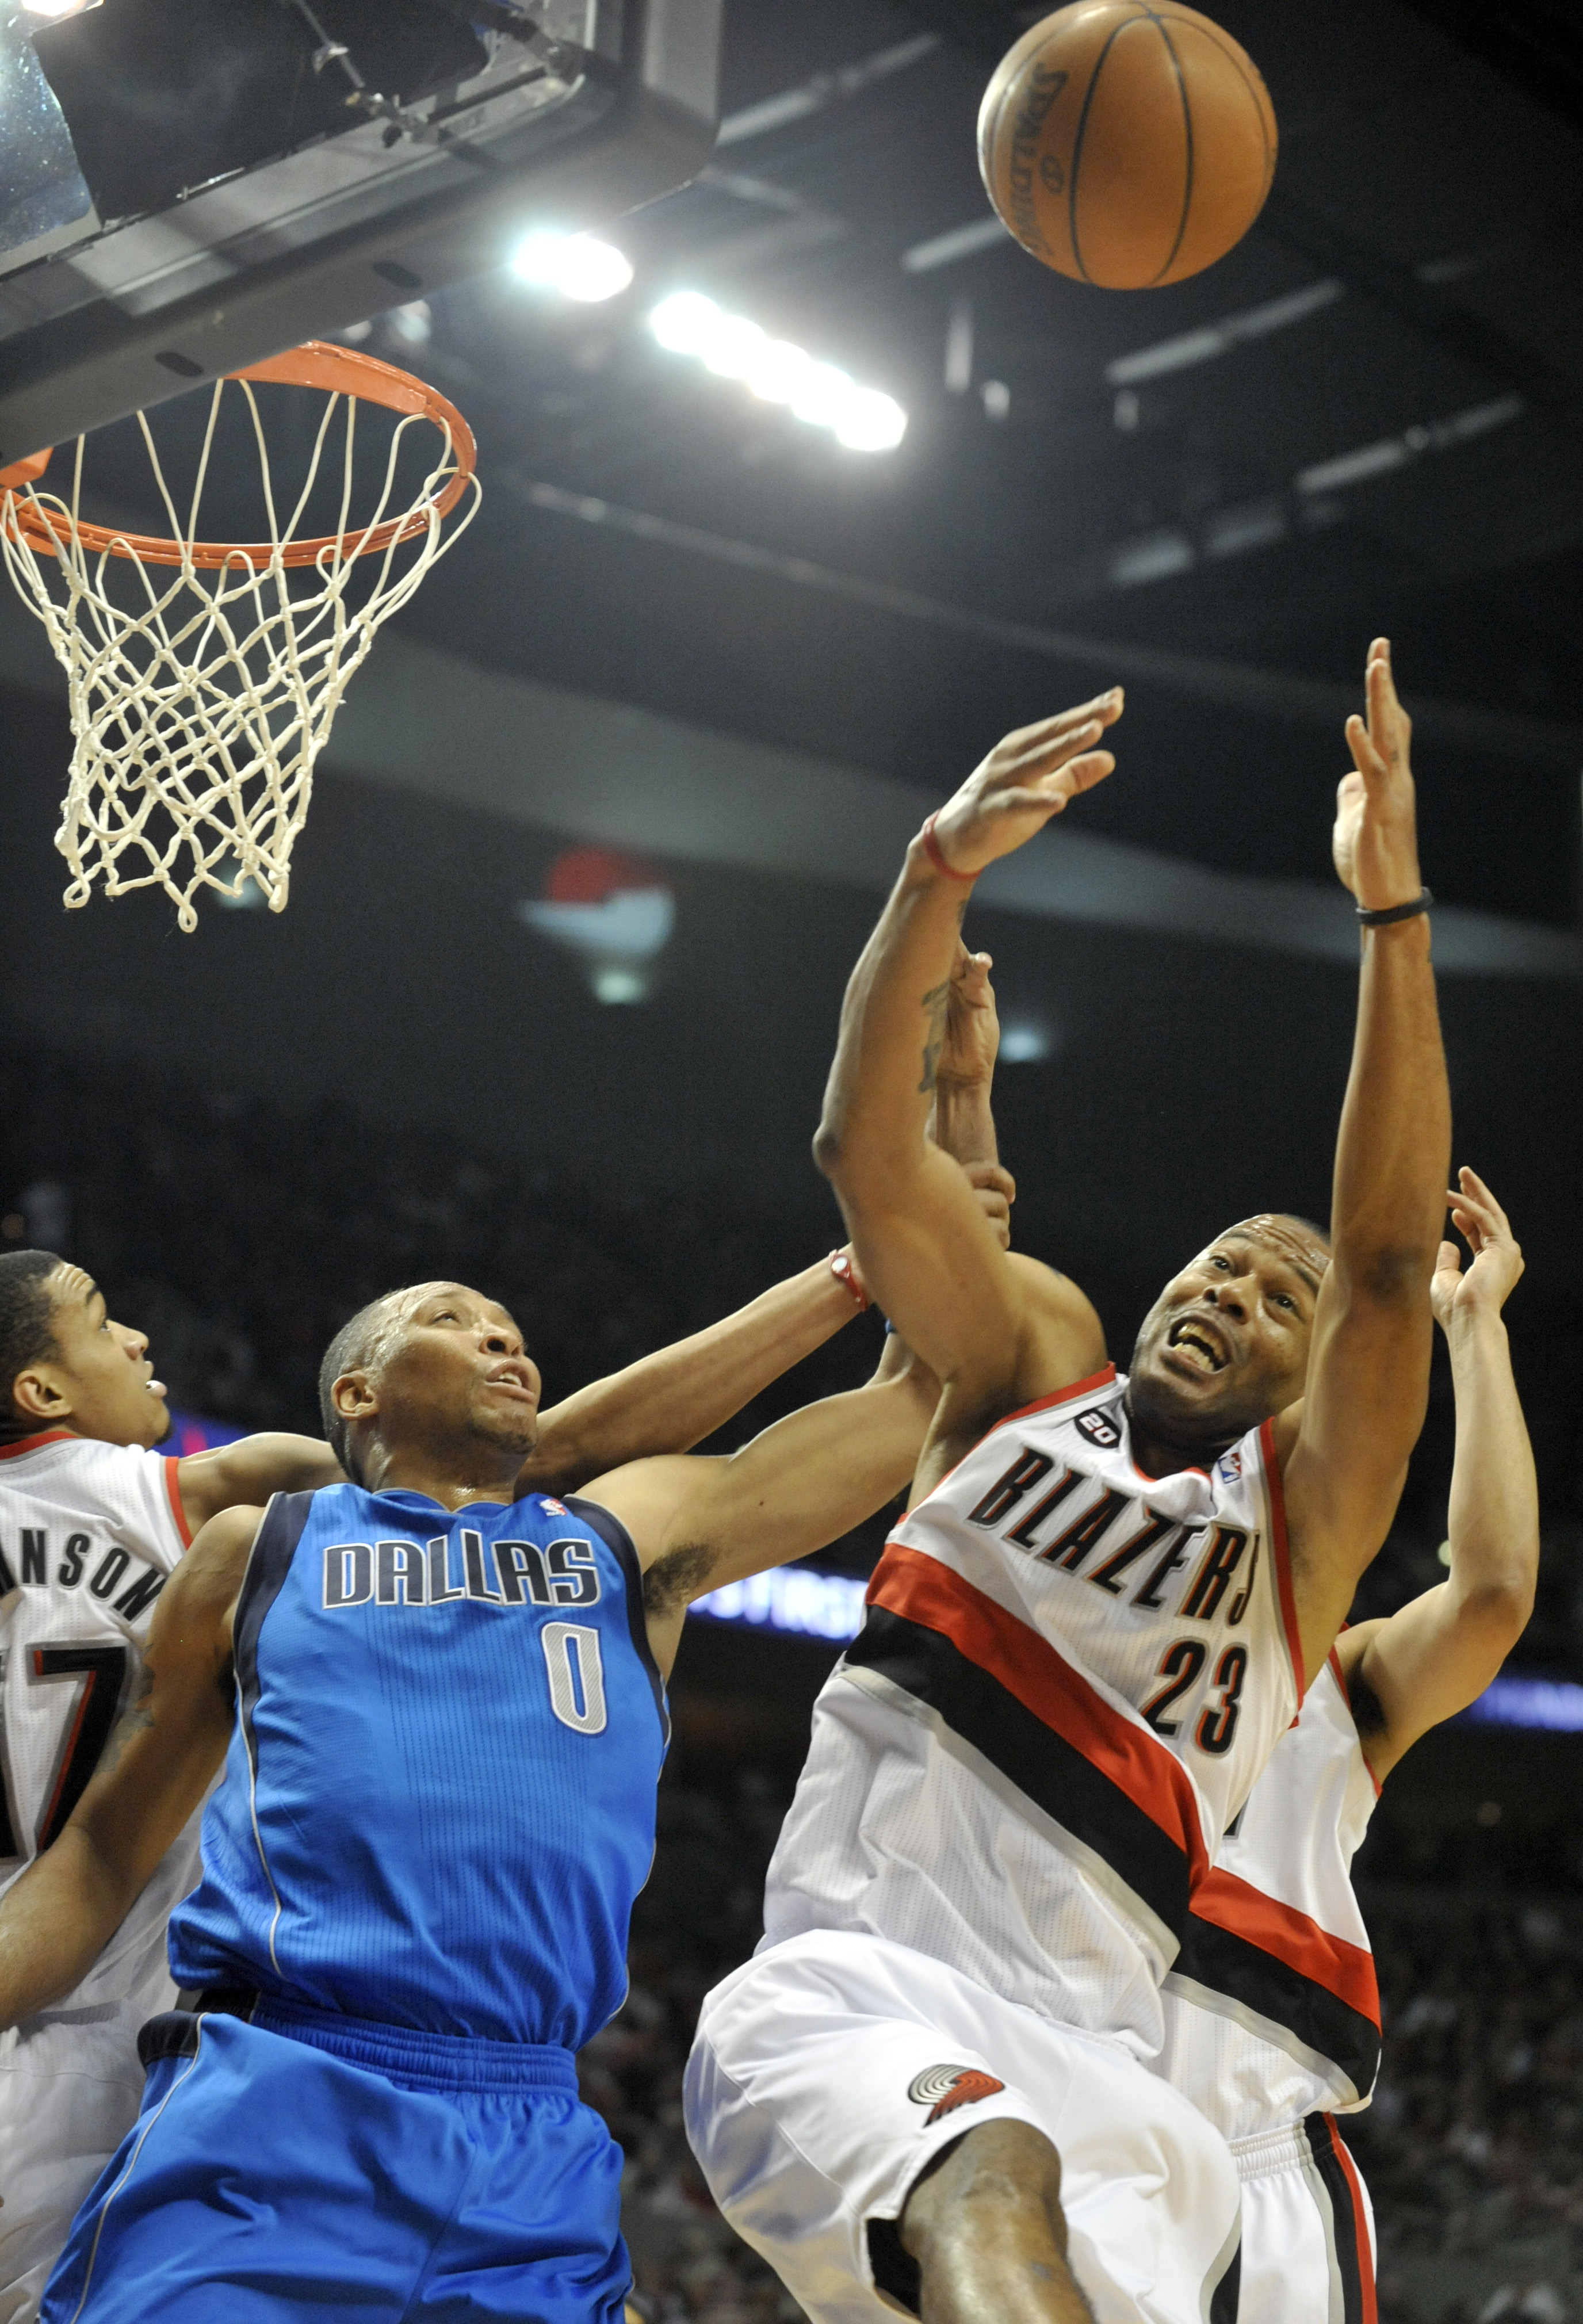 PORTLAND, OR - APRIL 28: Shawn Marion #0 of the Dallas Mavericks battles for a rebound with Marcus Camby #23 of the Portland Trail Blazers during the first quarter of Game Six of the Western Conference Quartefinals in the 2011 NBA Playsoffs on April 28, 2